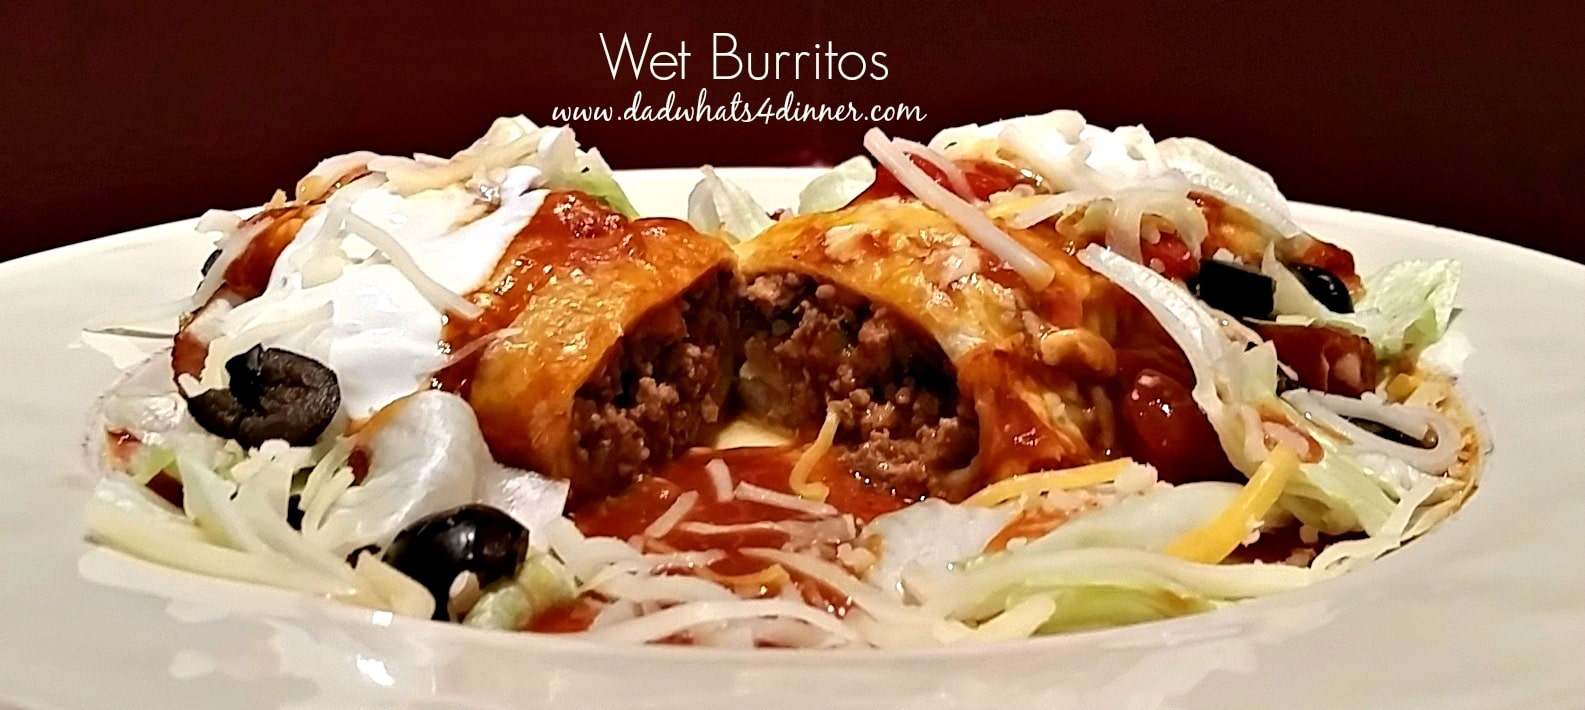 Wet Burritos | http://dadwhats4dinner.com